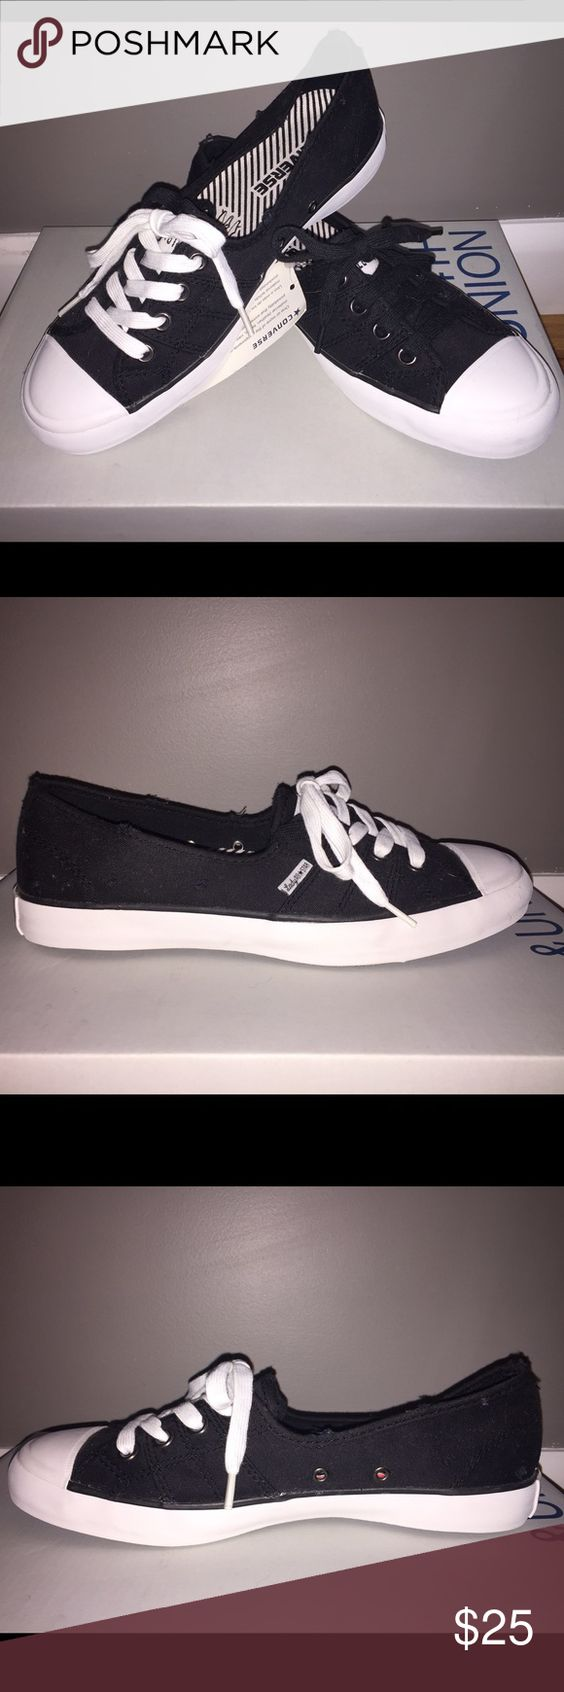 Converse Sneaker Black LADY converse sneaker. Slightly thinner sole and shorter front than regular converse. Includes both black and white laces. New, no tags. Converse Shoes Sneakers